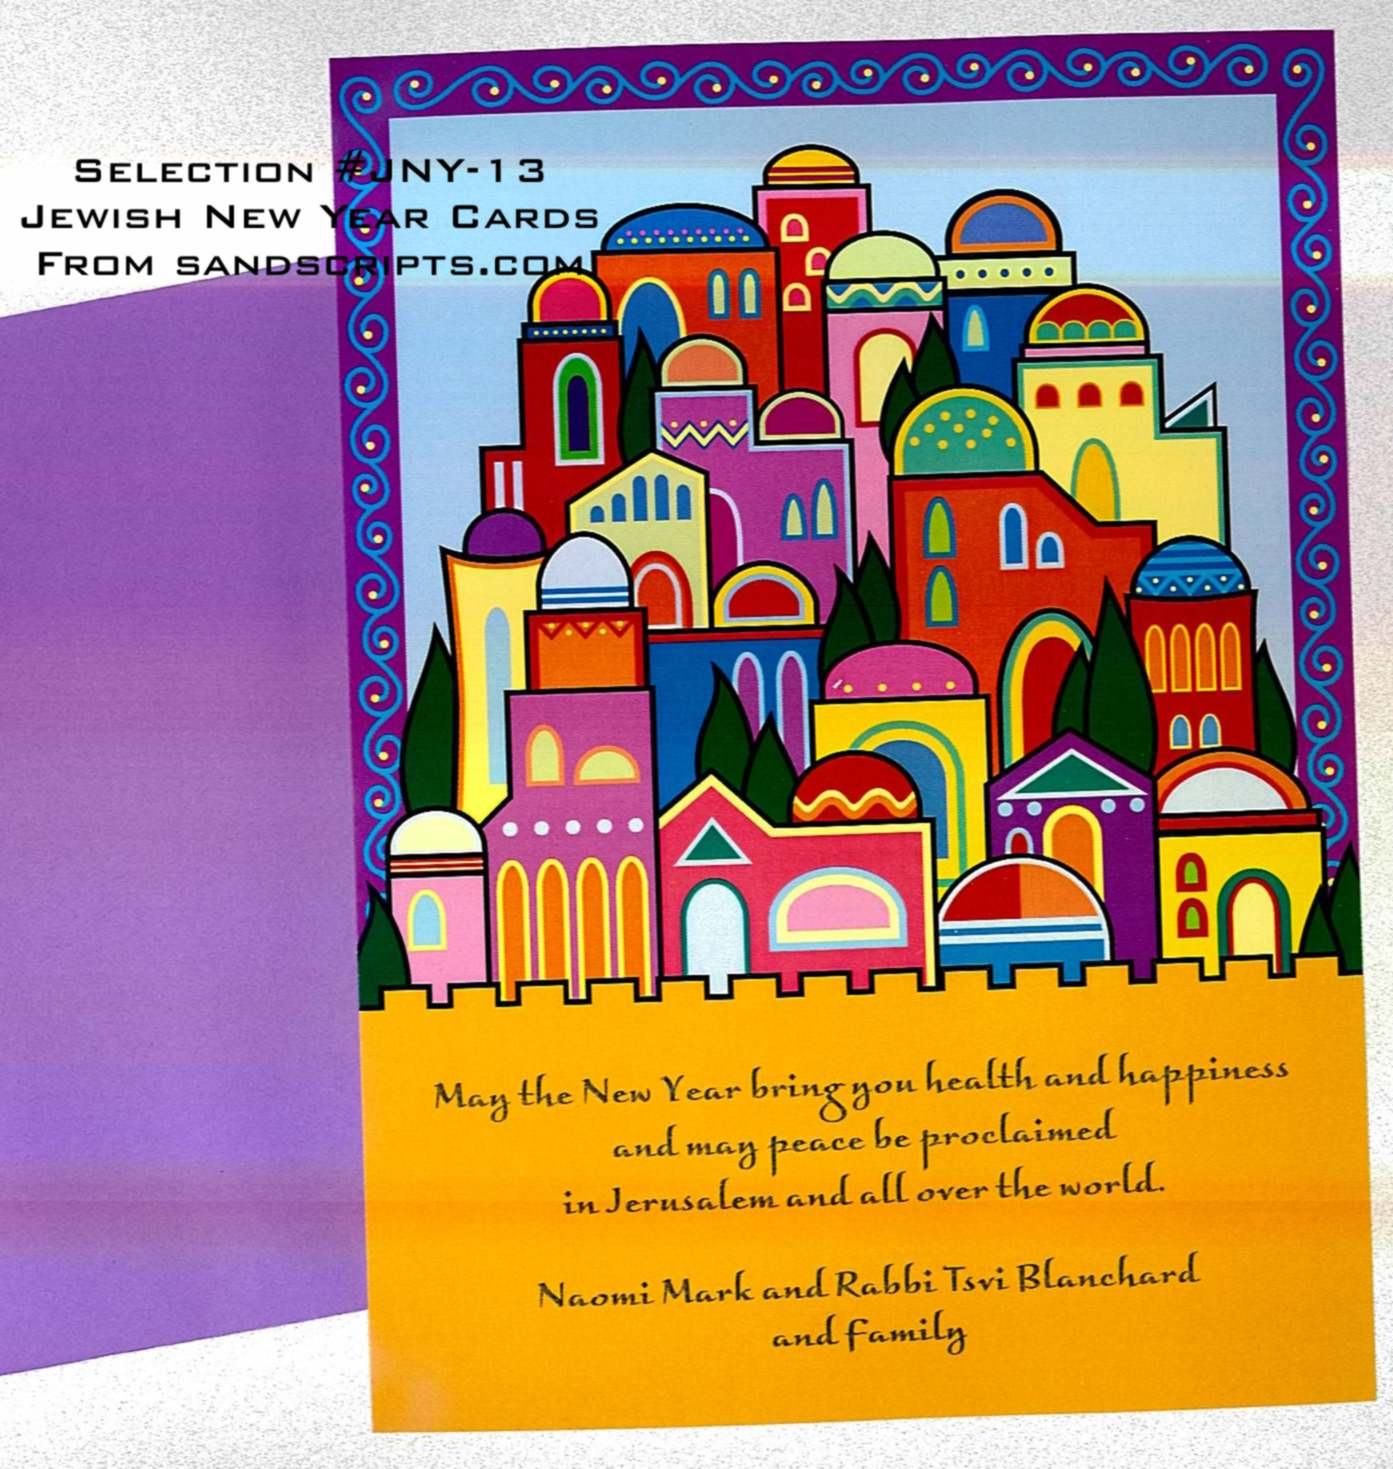 Jewish New Year Rosh Hashanah Cards From Sand Scripts